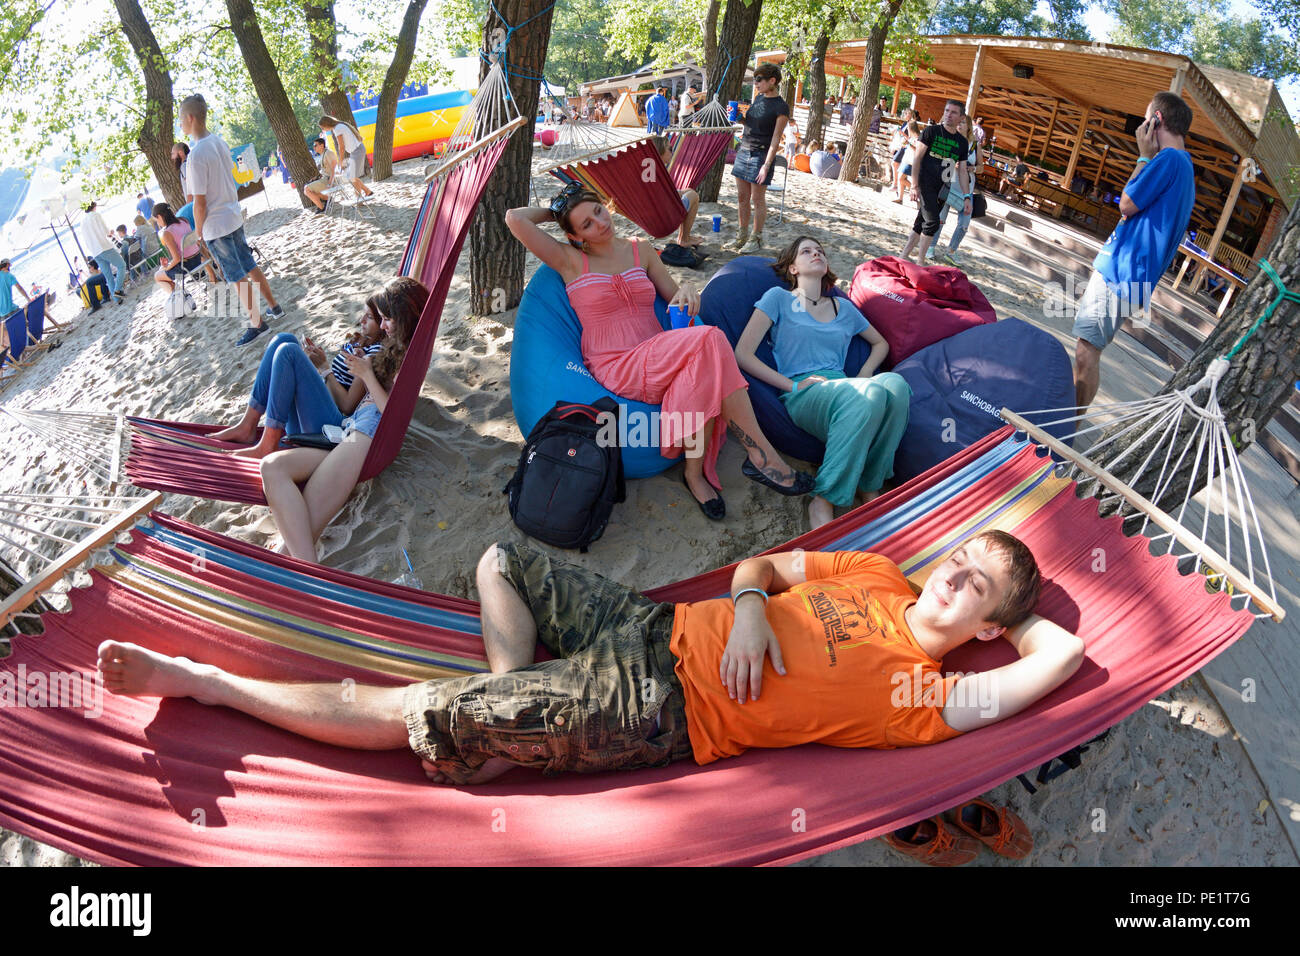 "Man laying in a hammock, women sitting in bean bags. Fest of Yoga and Vedic Culture ""Vedalife-2018"". July 25, 2018. Kiev, Ukraine - Stock Image"